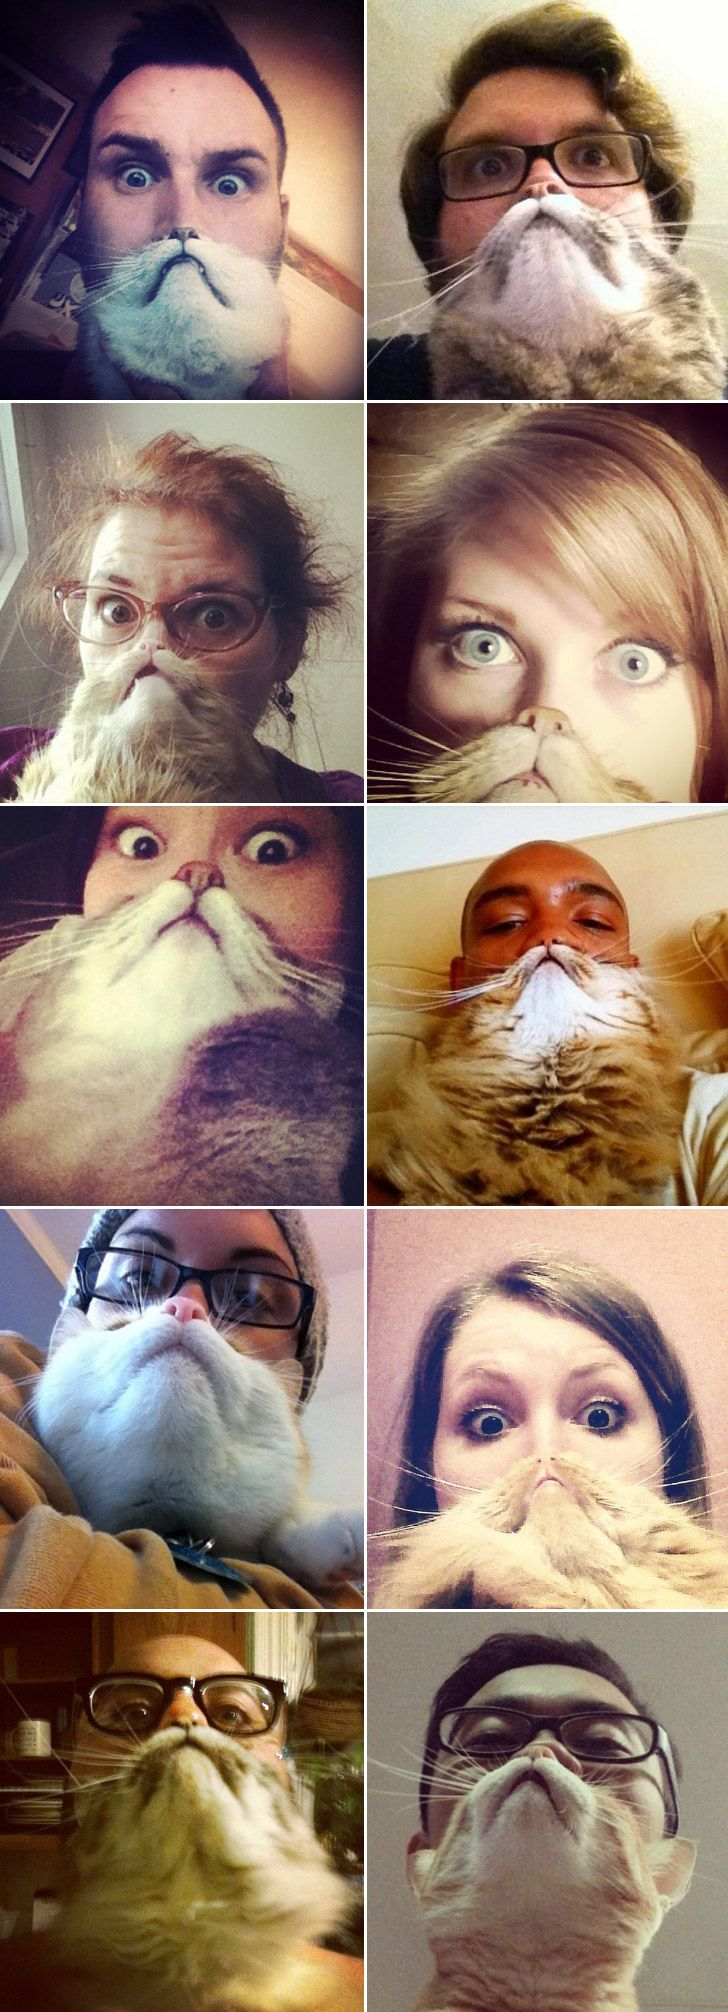 People with cat beards. I don't quite understand, but it's funny.